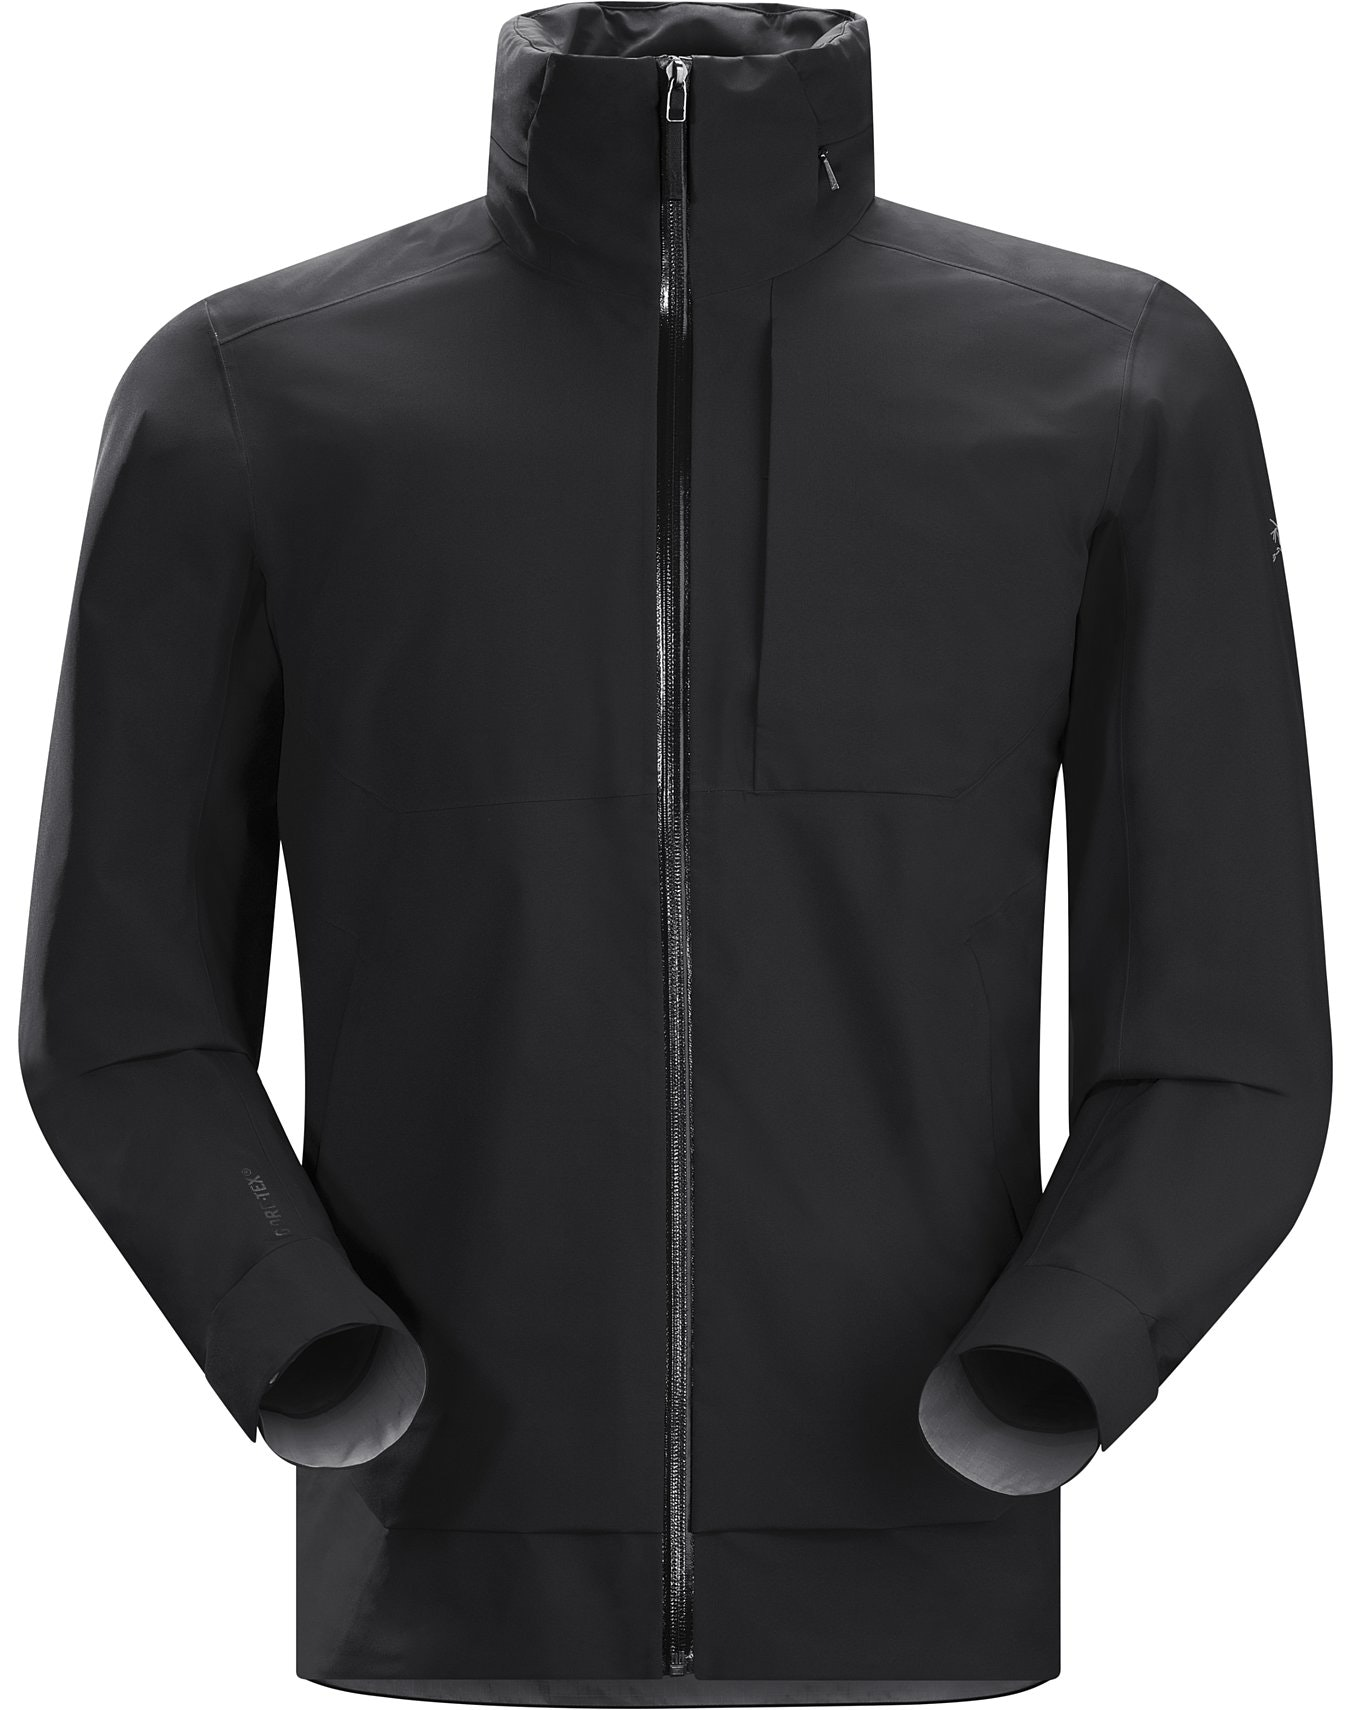 Куртка ARC'TERYX Interstate